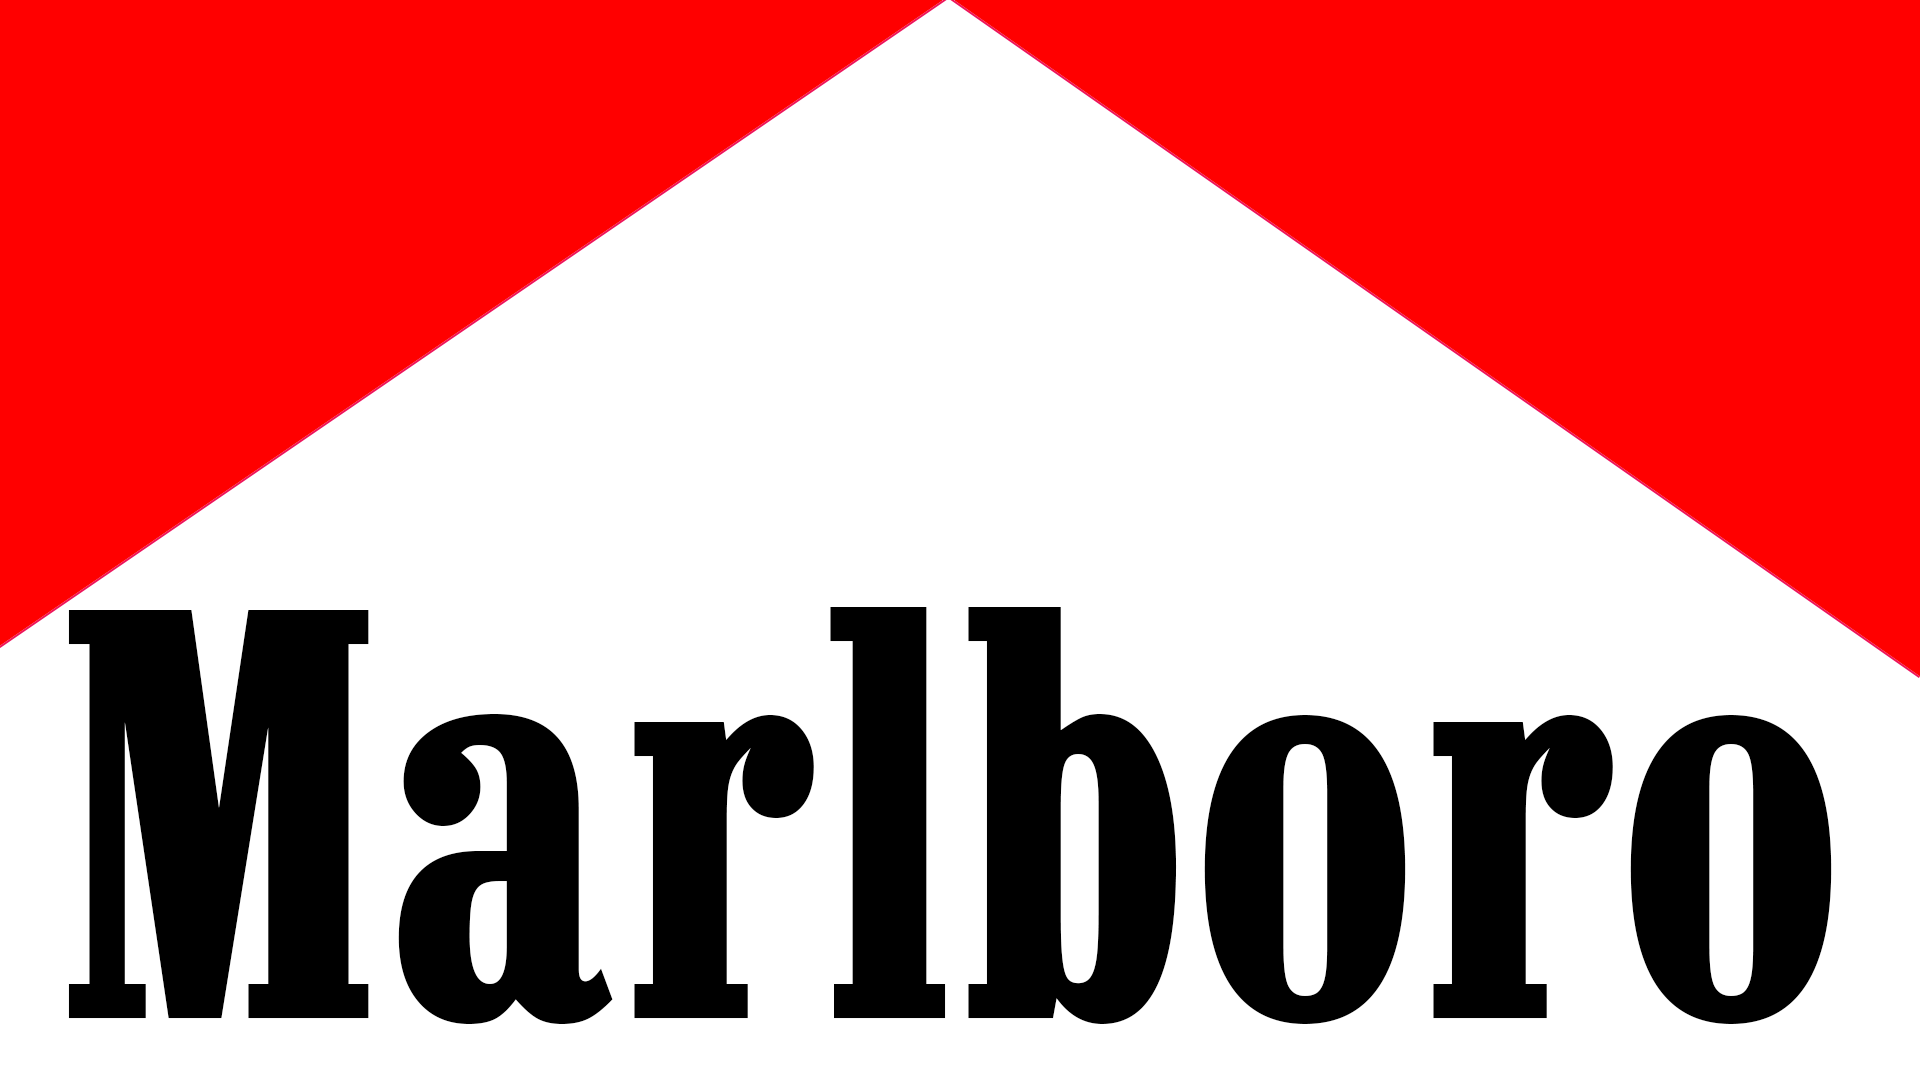 Couldnu0027t find a 1080p Marlboro background so I made one. - Marlboro Logo PNG